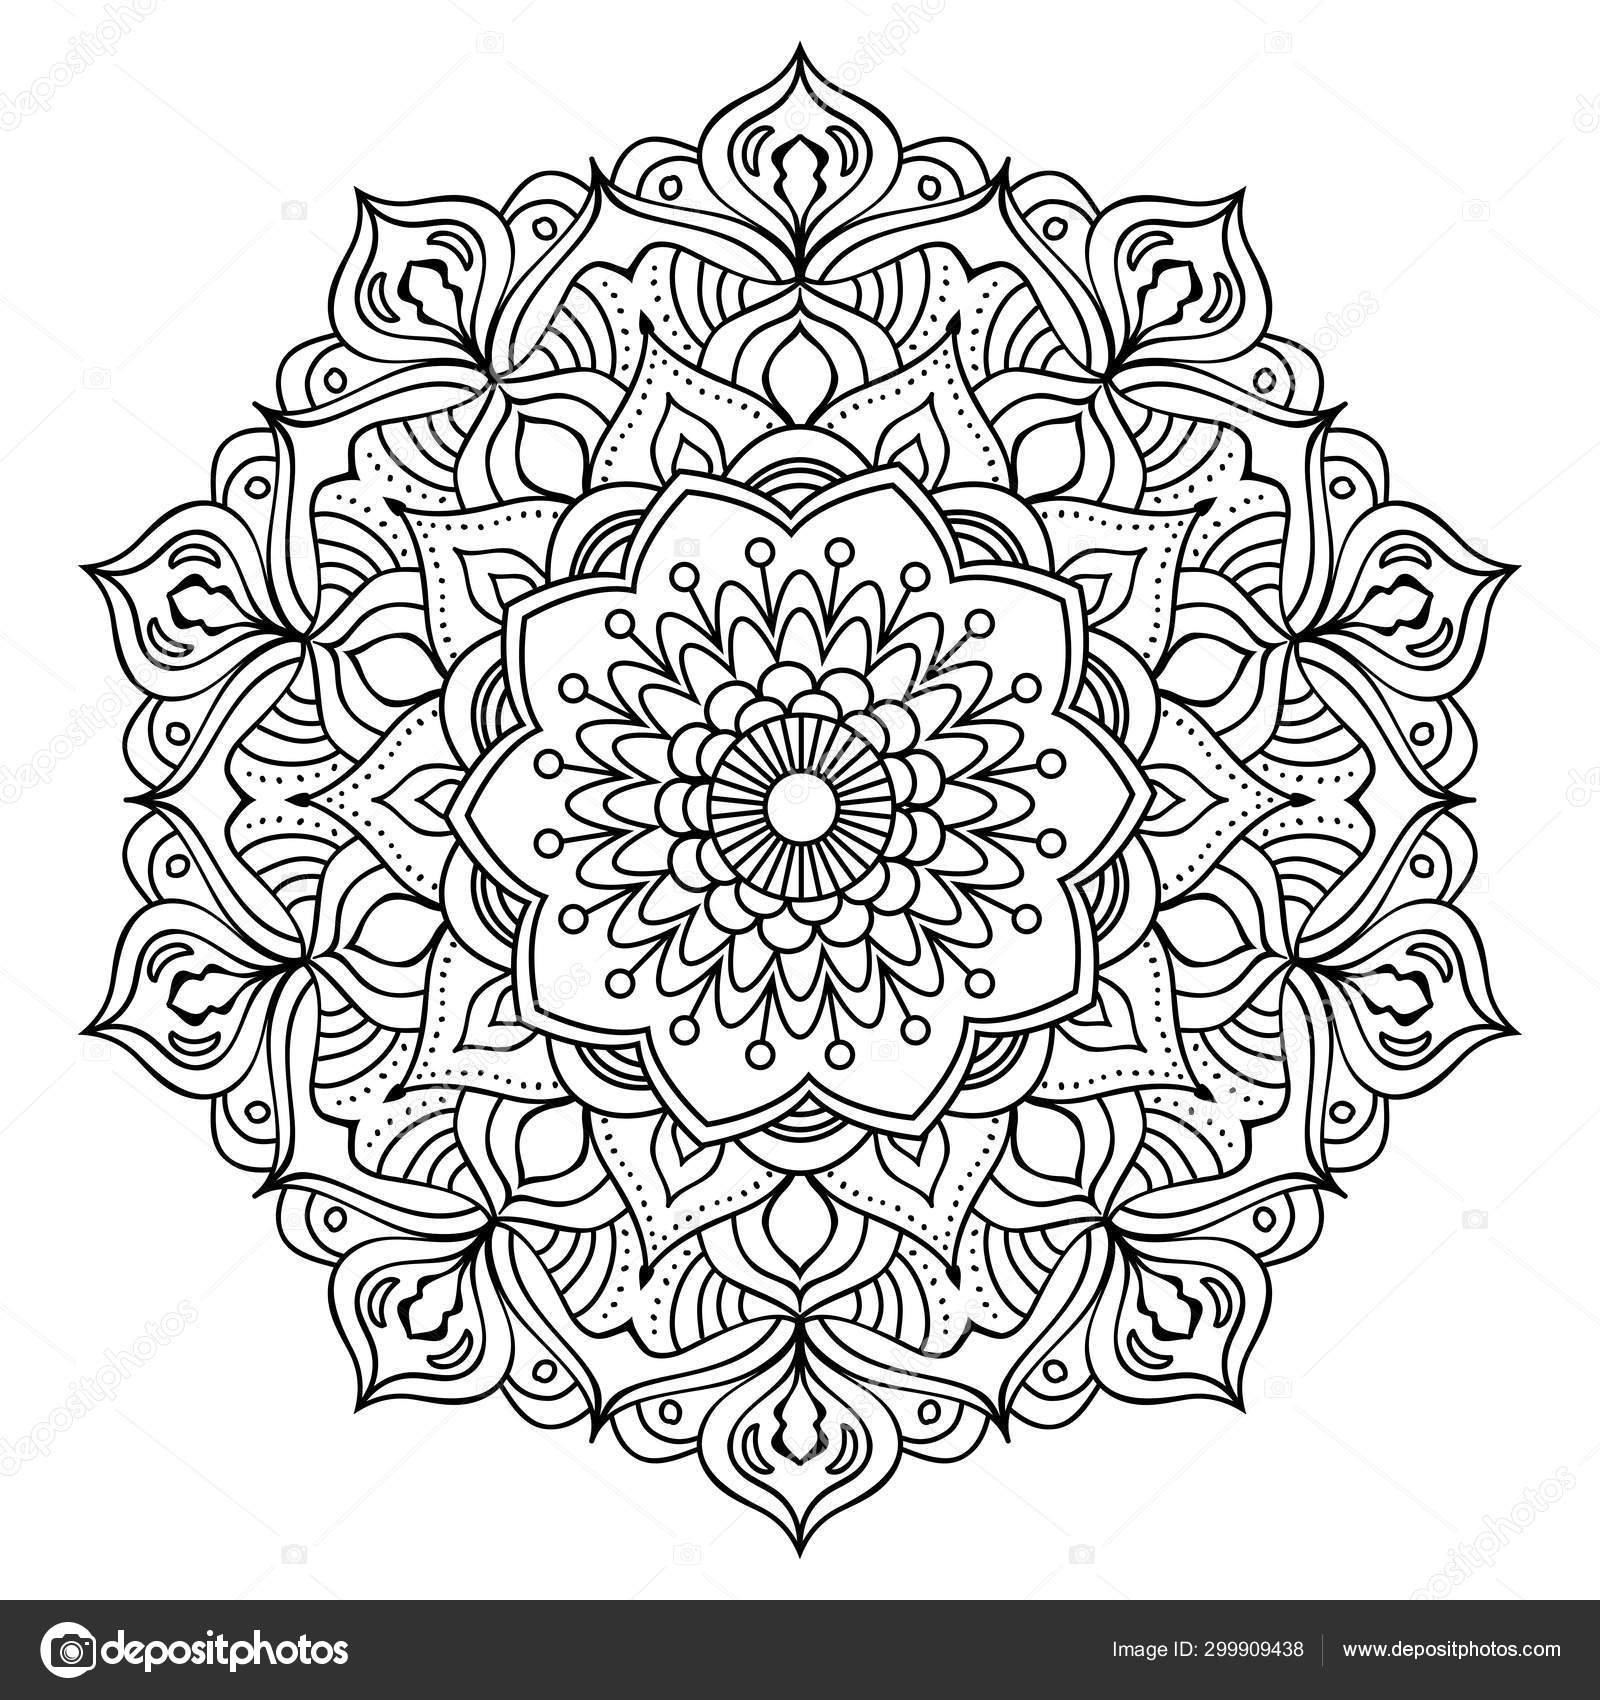 Coloring Book Flowers Printable | Grafika, Mandala, Rajzok | 1700x1600